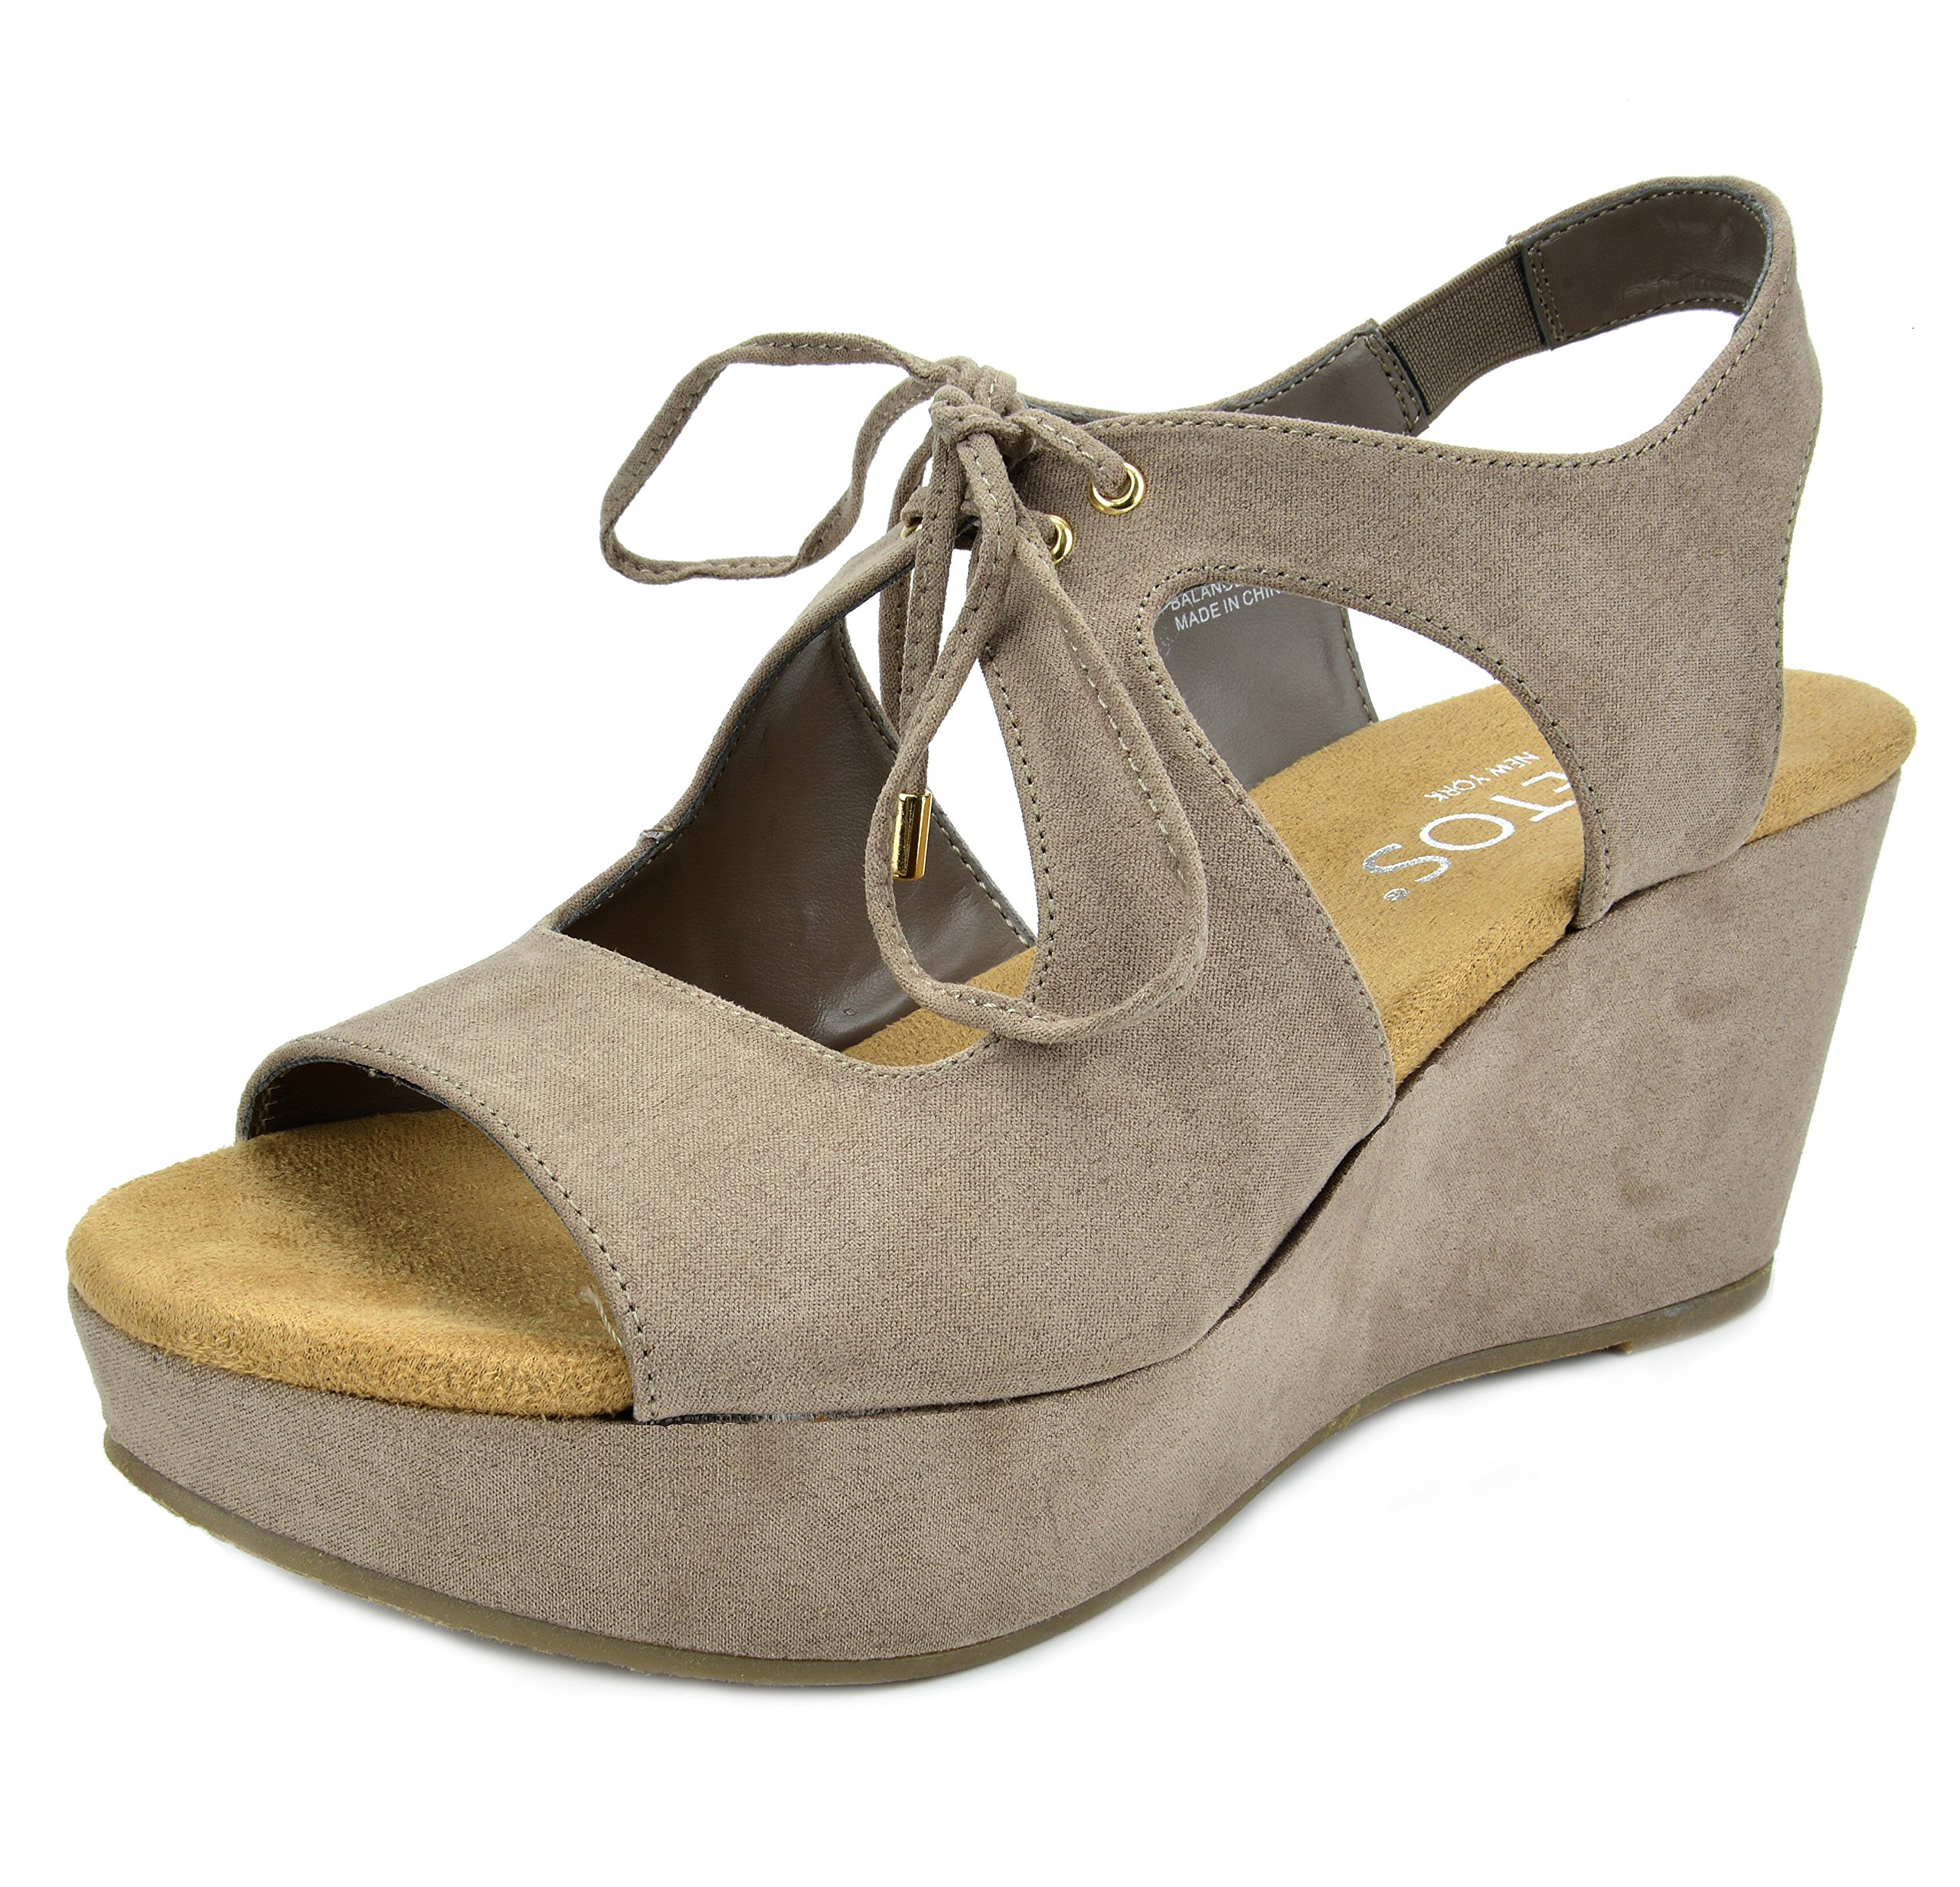 TOETOS Women's Sandro-02 Taupe Mid Heel Platform Wedges Sandals - 8 M US